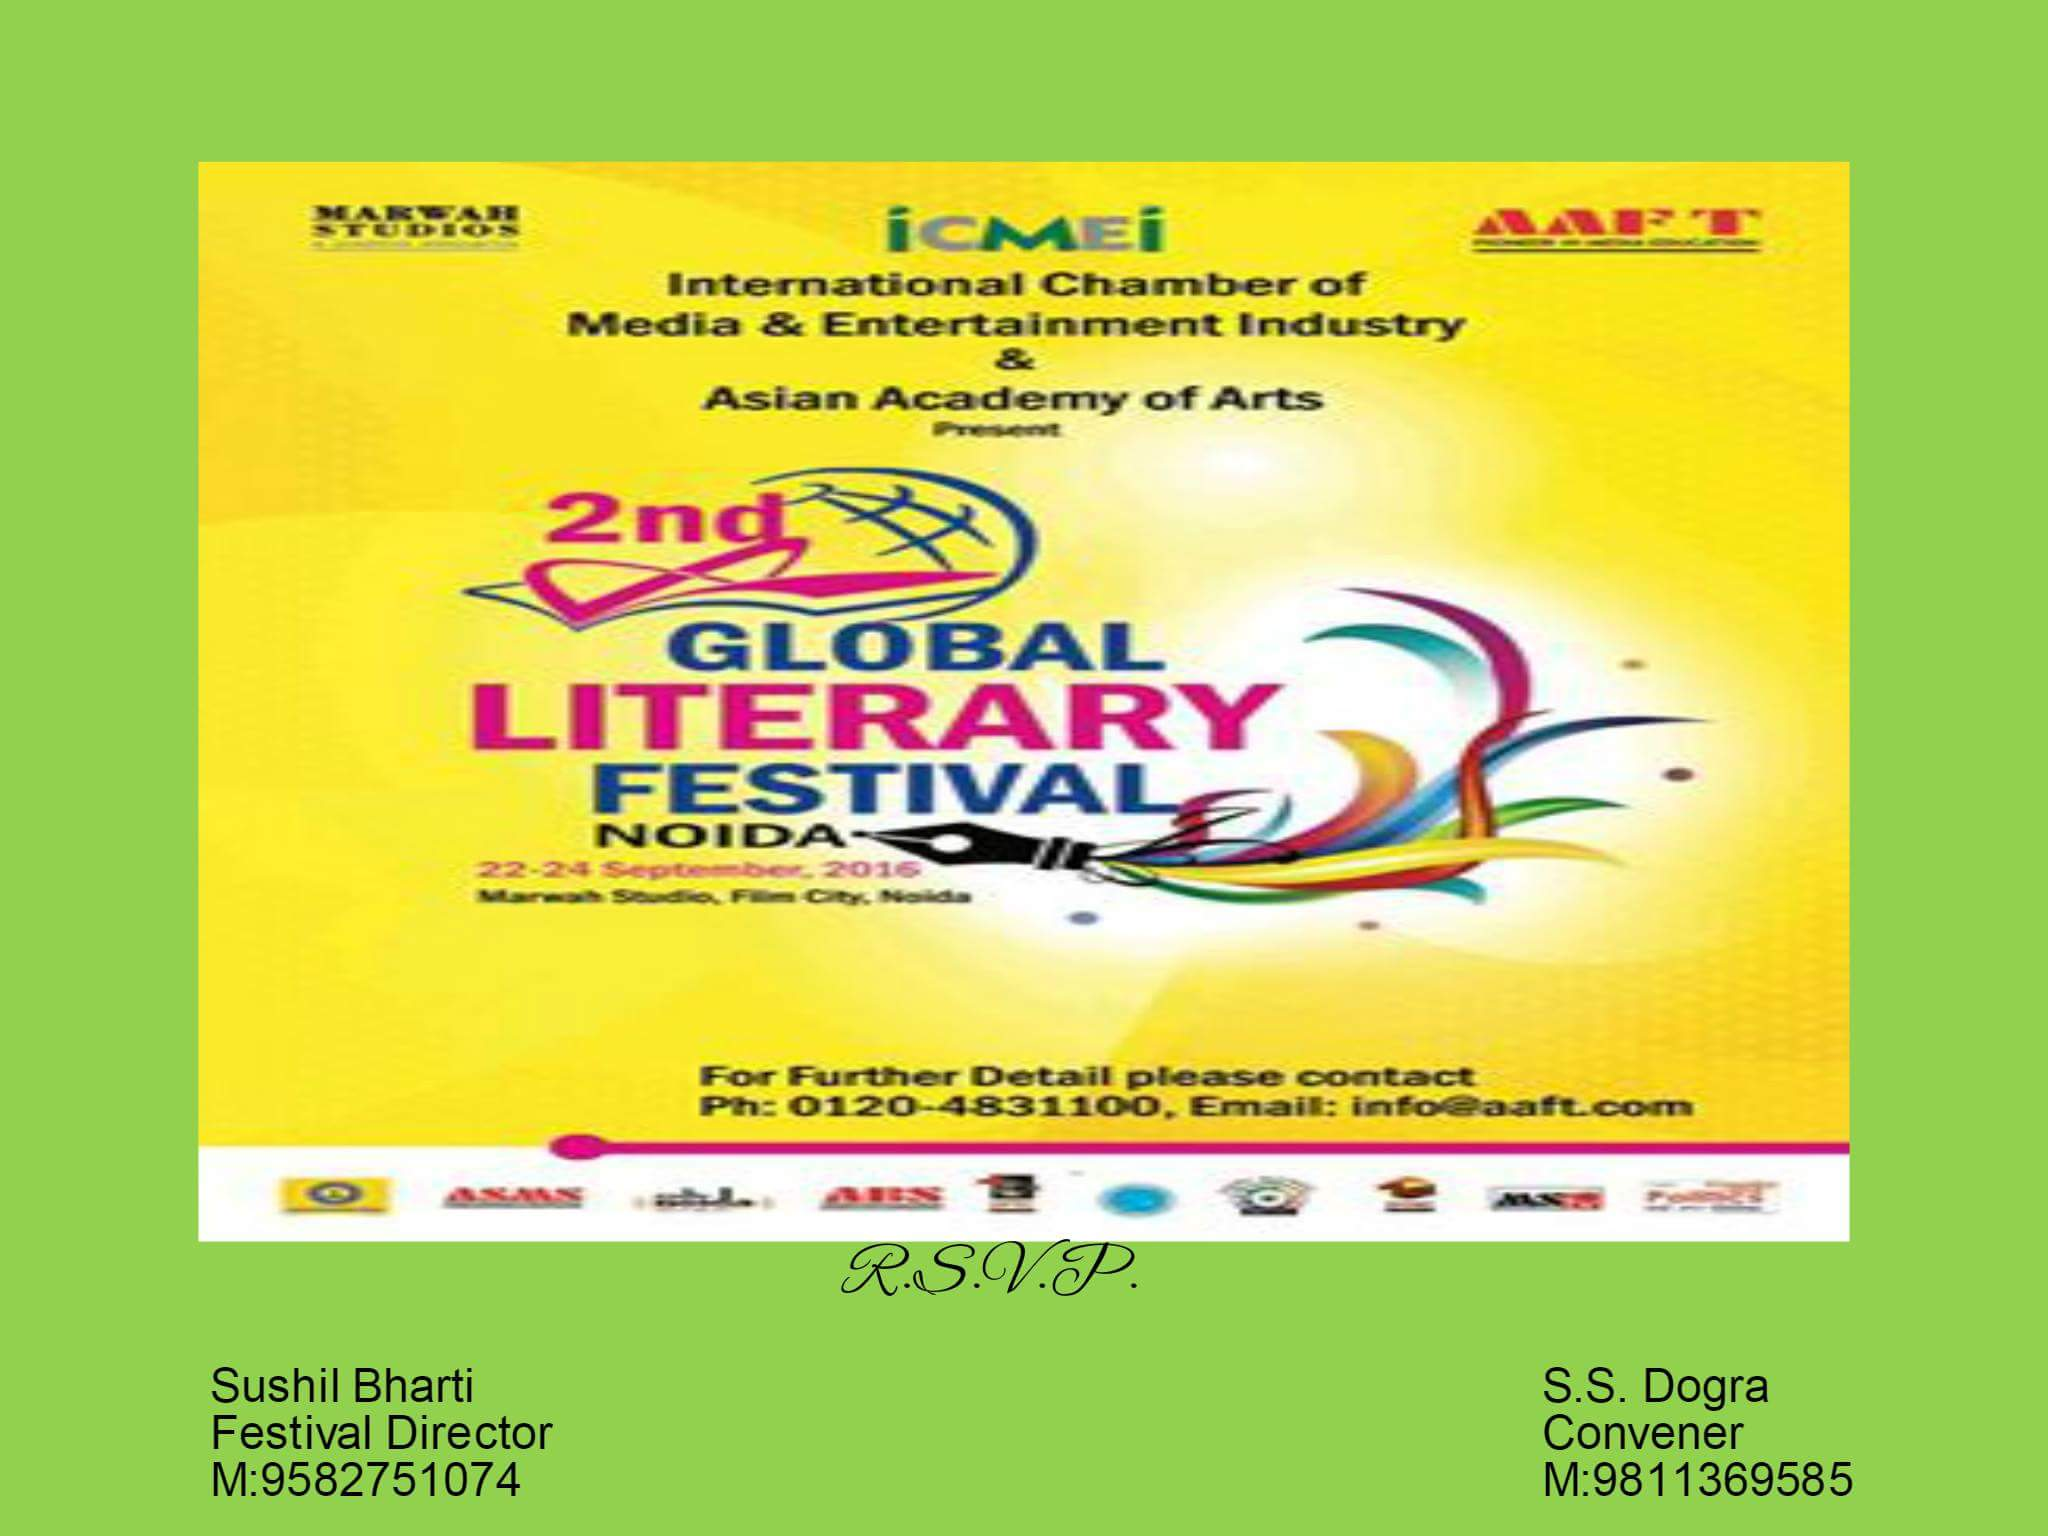 The 2nd Global Literary Festival from 22 to 24th of Sept 2016 at Film City, Noida